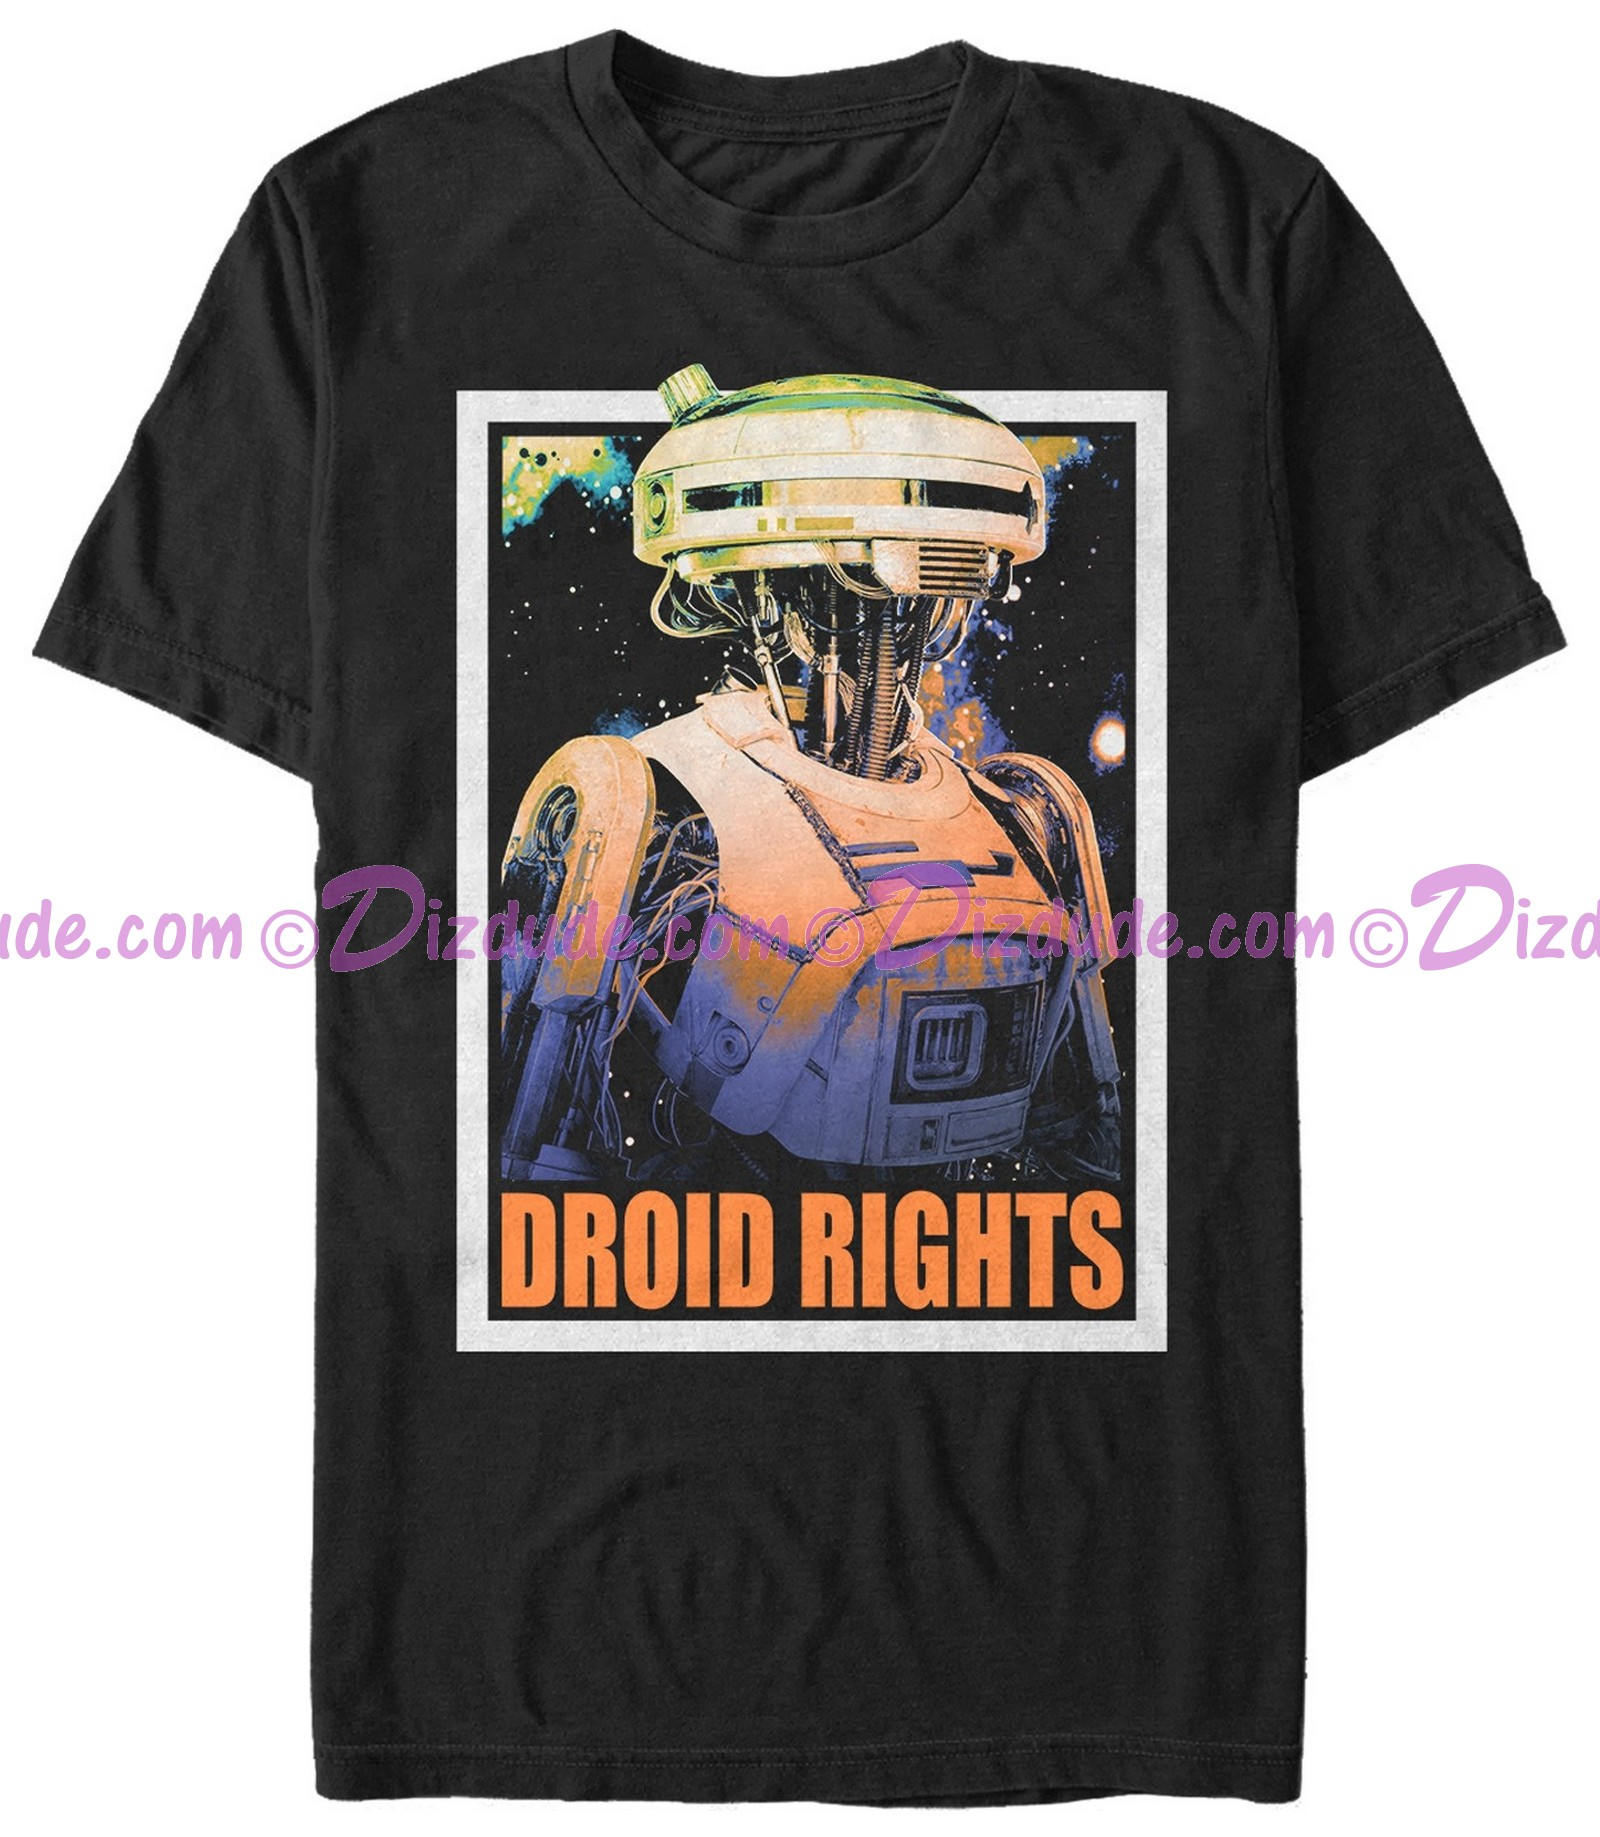 SOLO A Star Wars Story L3-37 Droid Rights Adult T-Shirt (Tshirt, T shirt or Tee)  © Dizdude.com